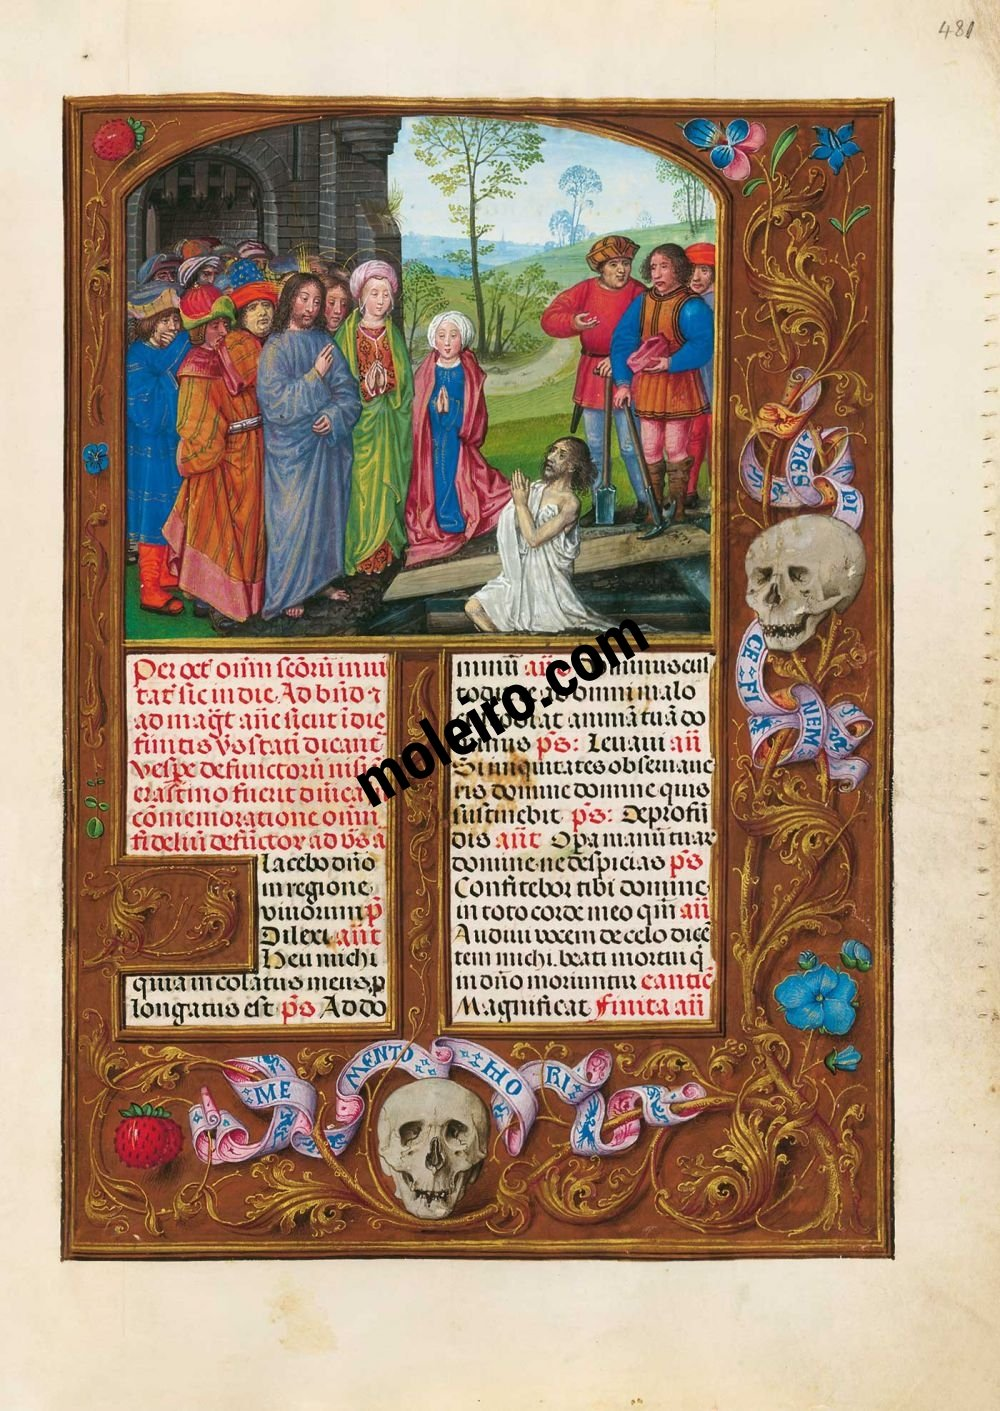 The Isabella Breviary f. 481r, The Resurrection of Lazarus